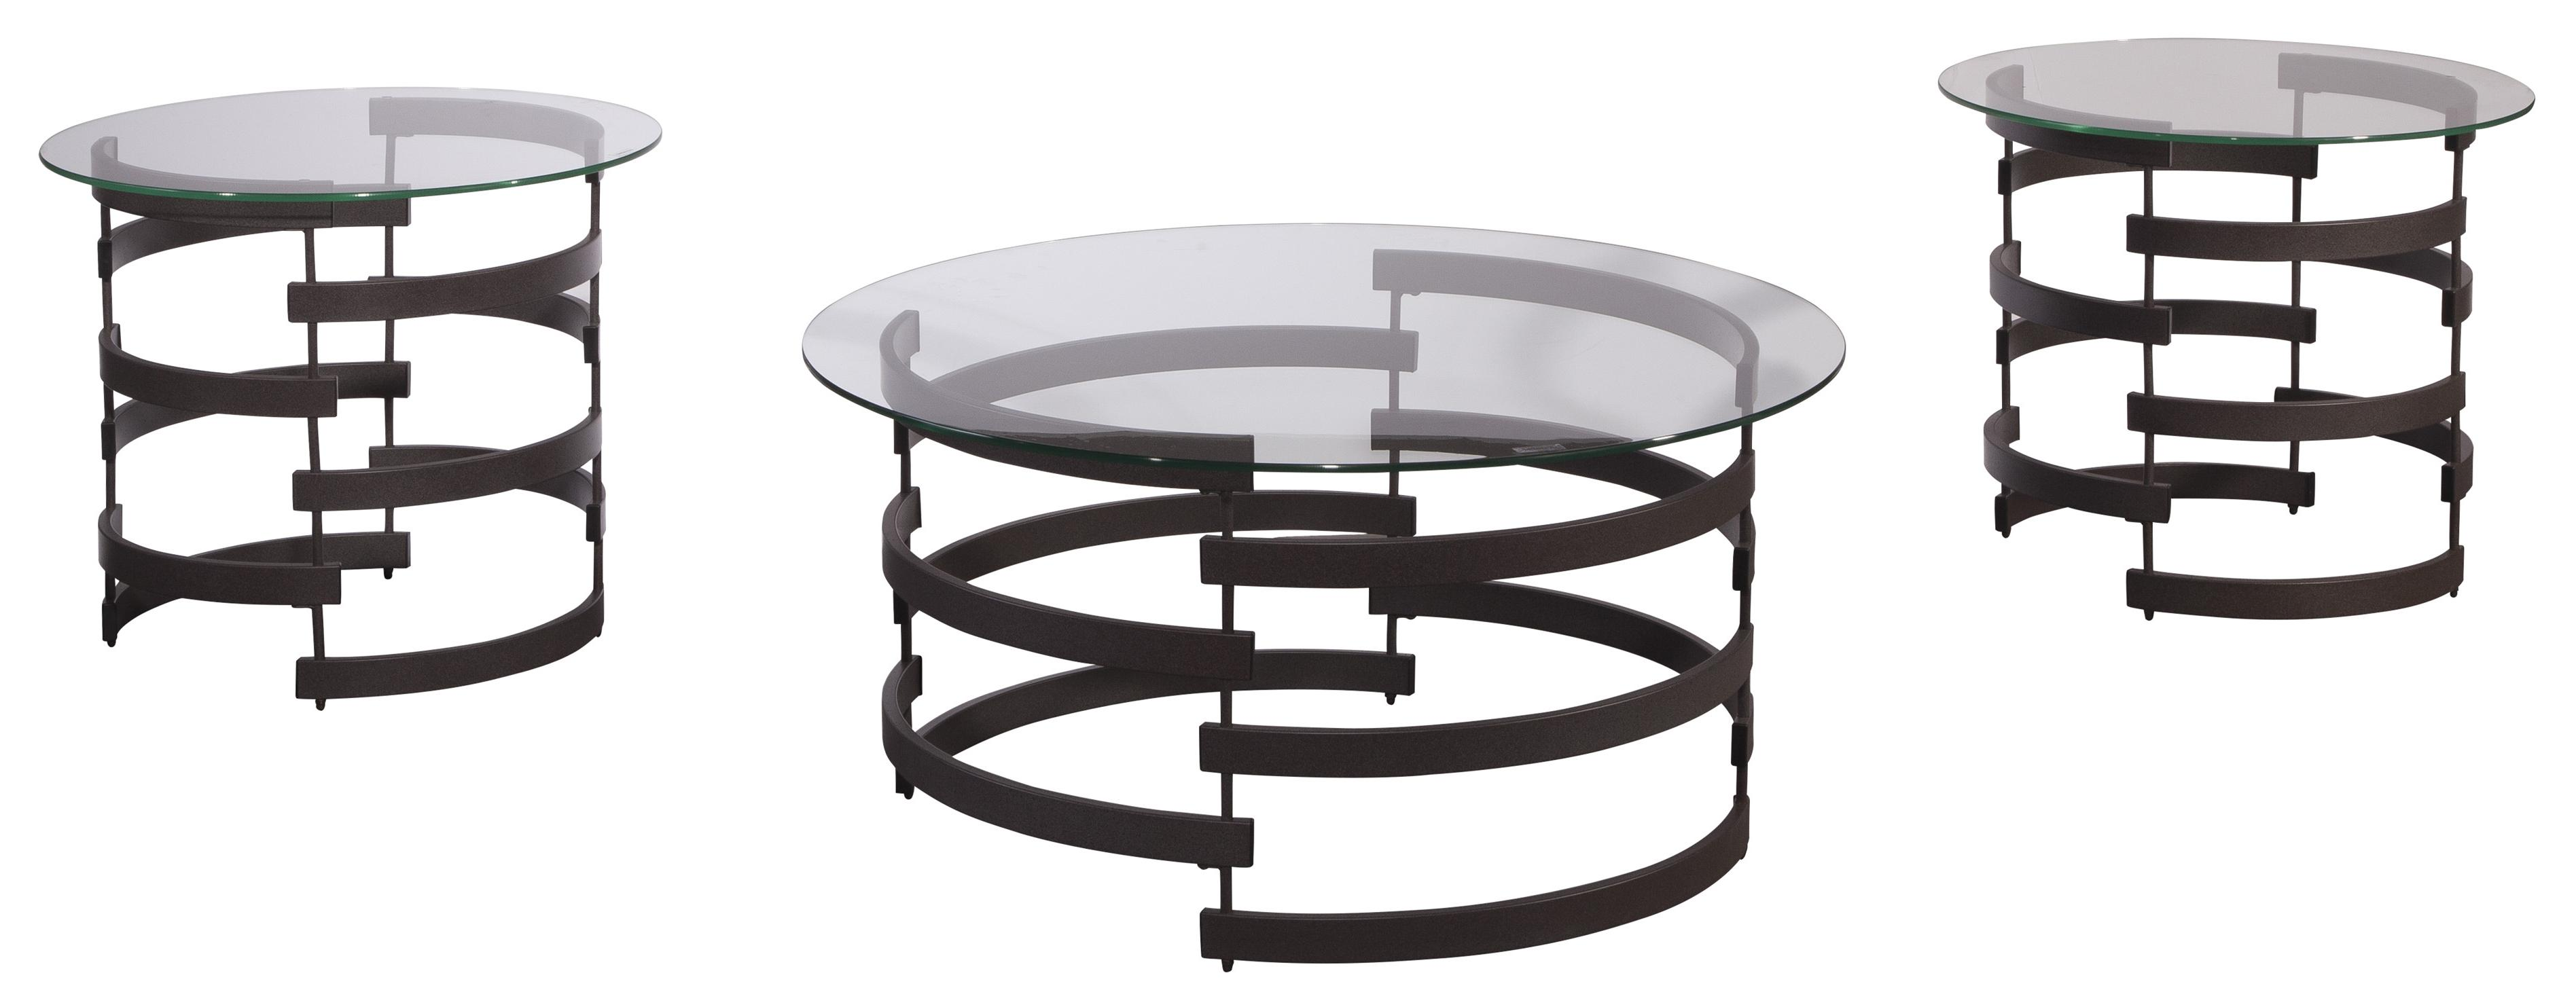 Signature Design By Ashley Kaymine Modern Occasional Table Set Value City Furniture